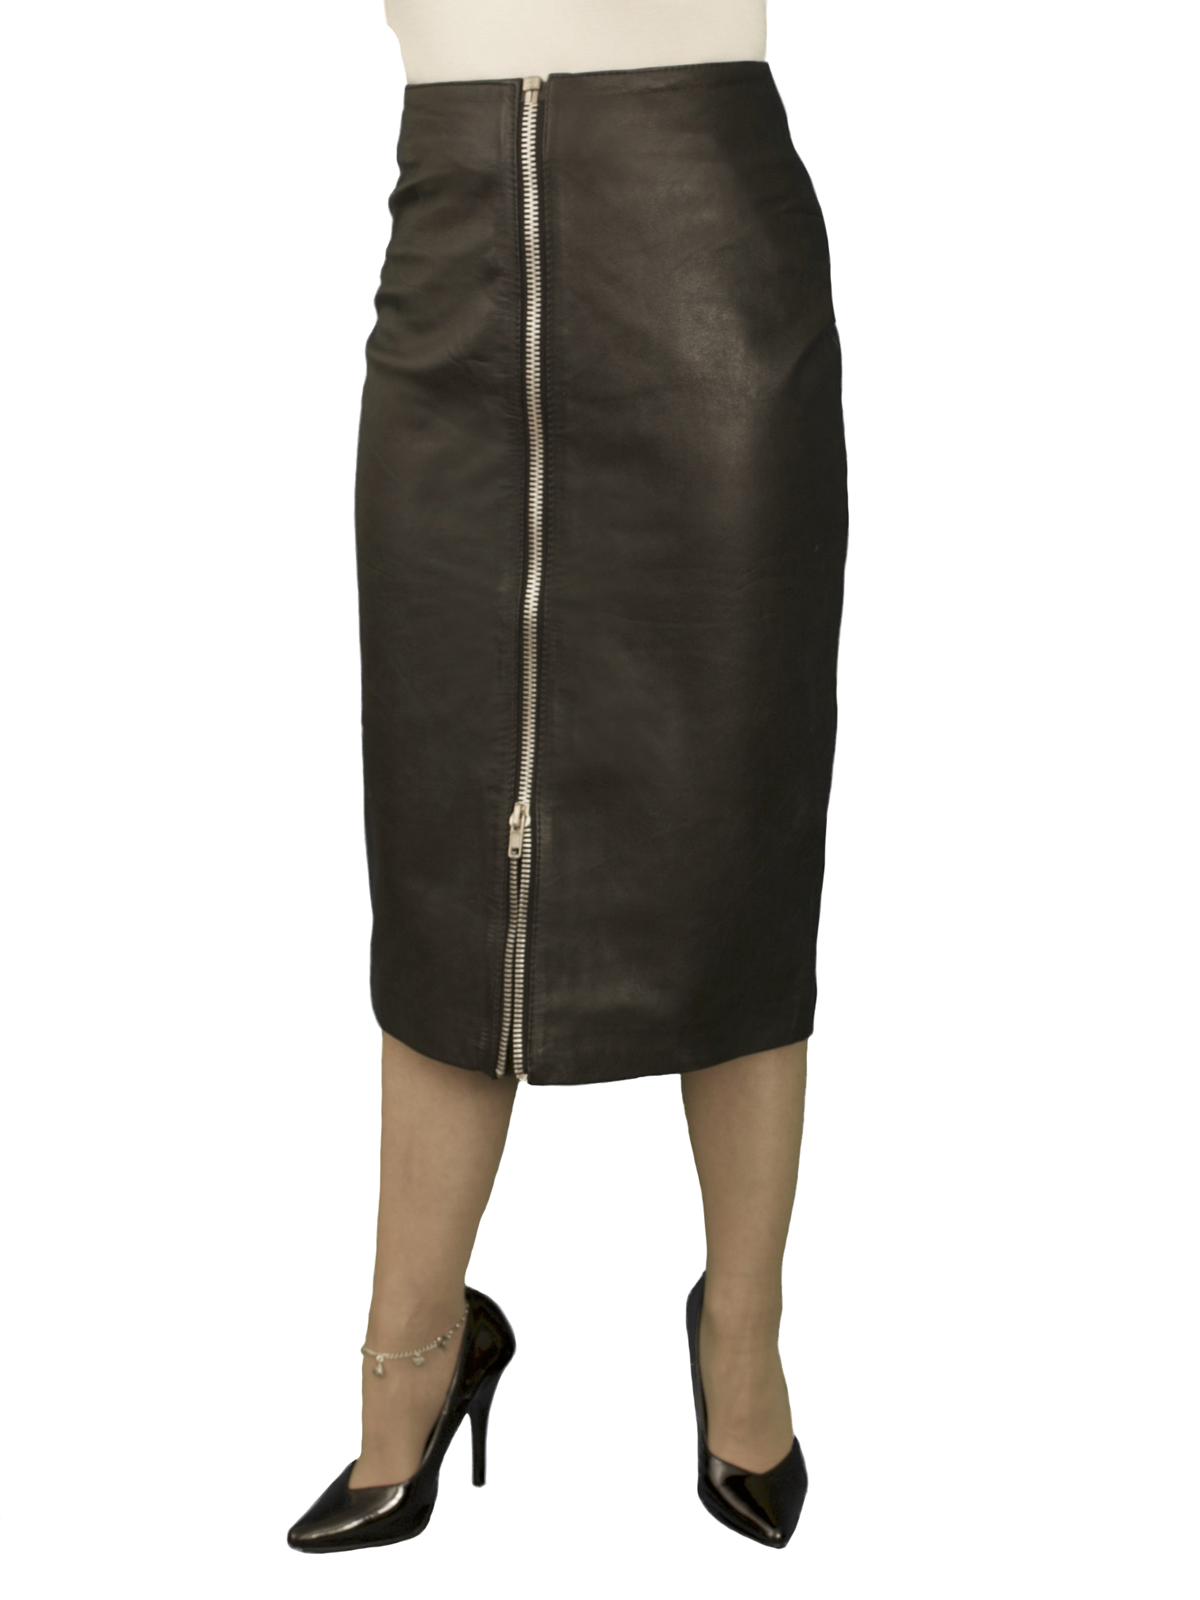 Black Midi Leather Skirt With Full Front Zip Below Knee